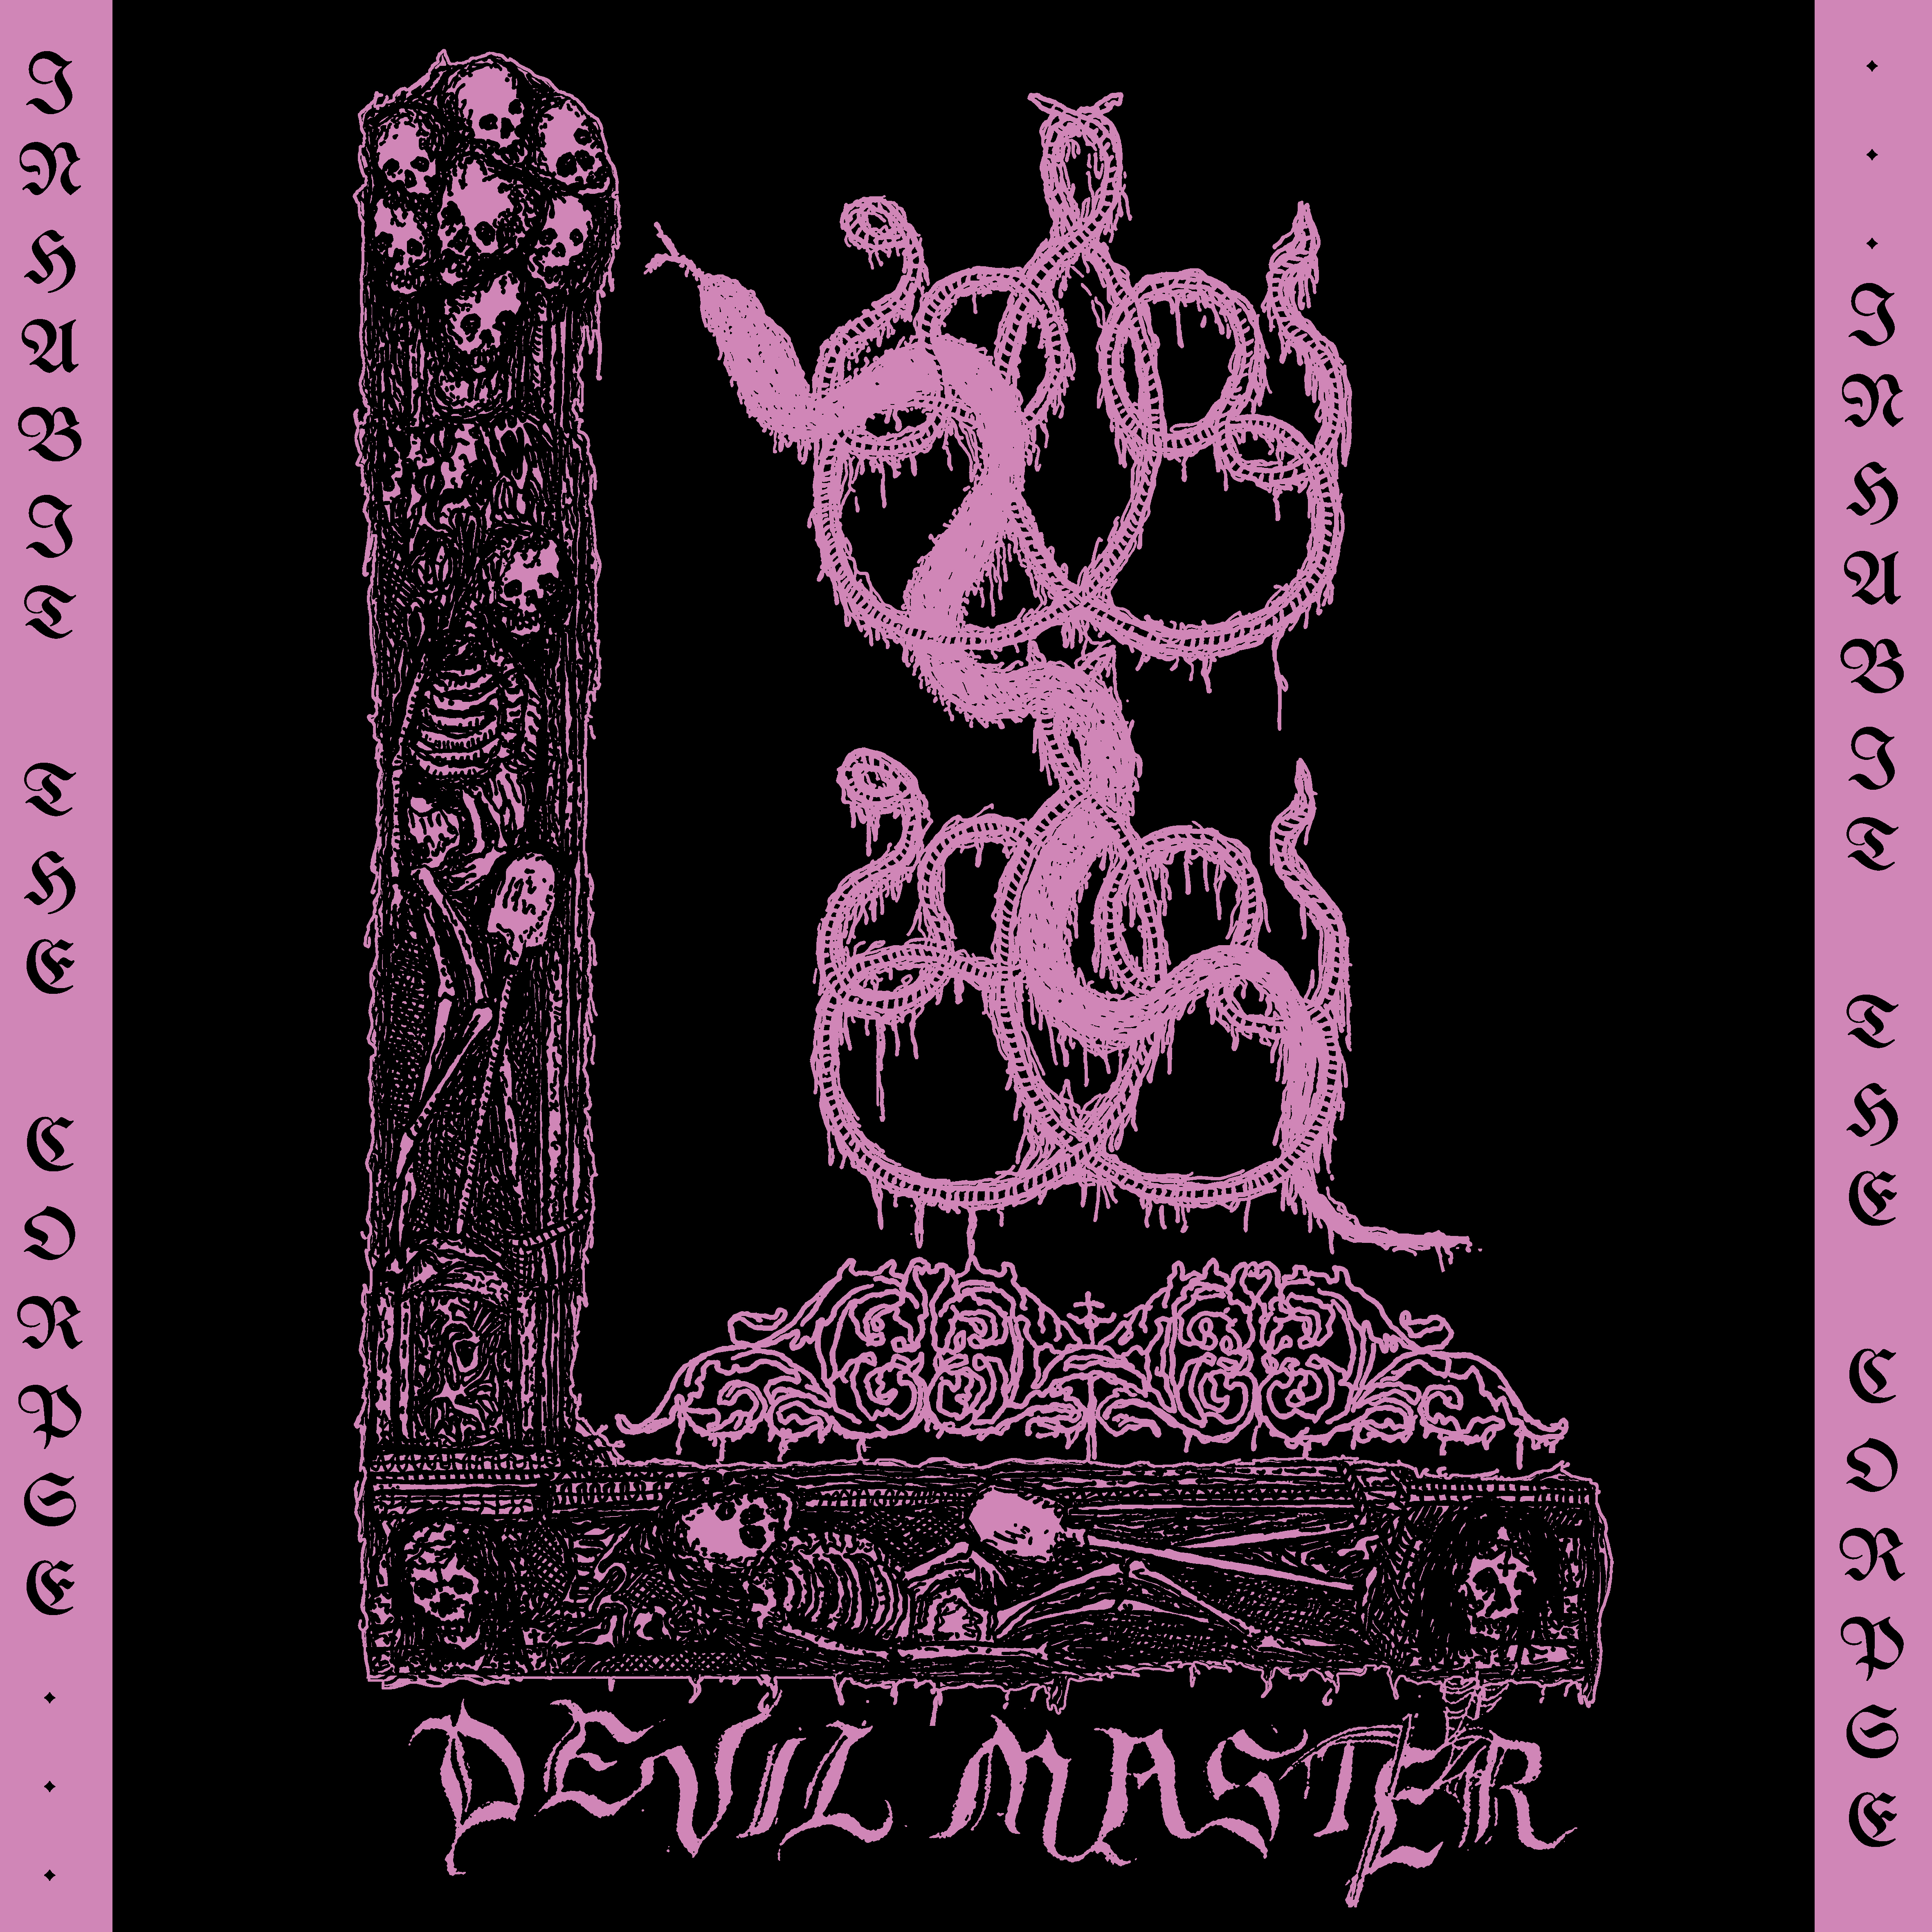 DEVIL MASTER - INHABIT THE CORPSE EP